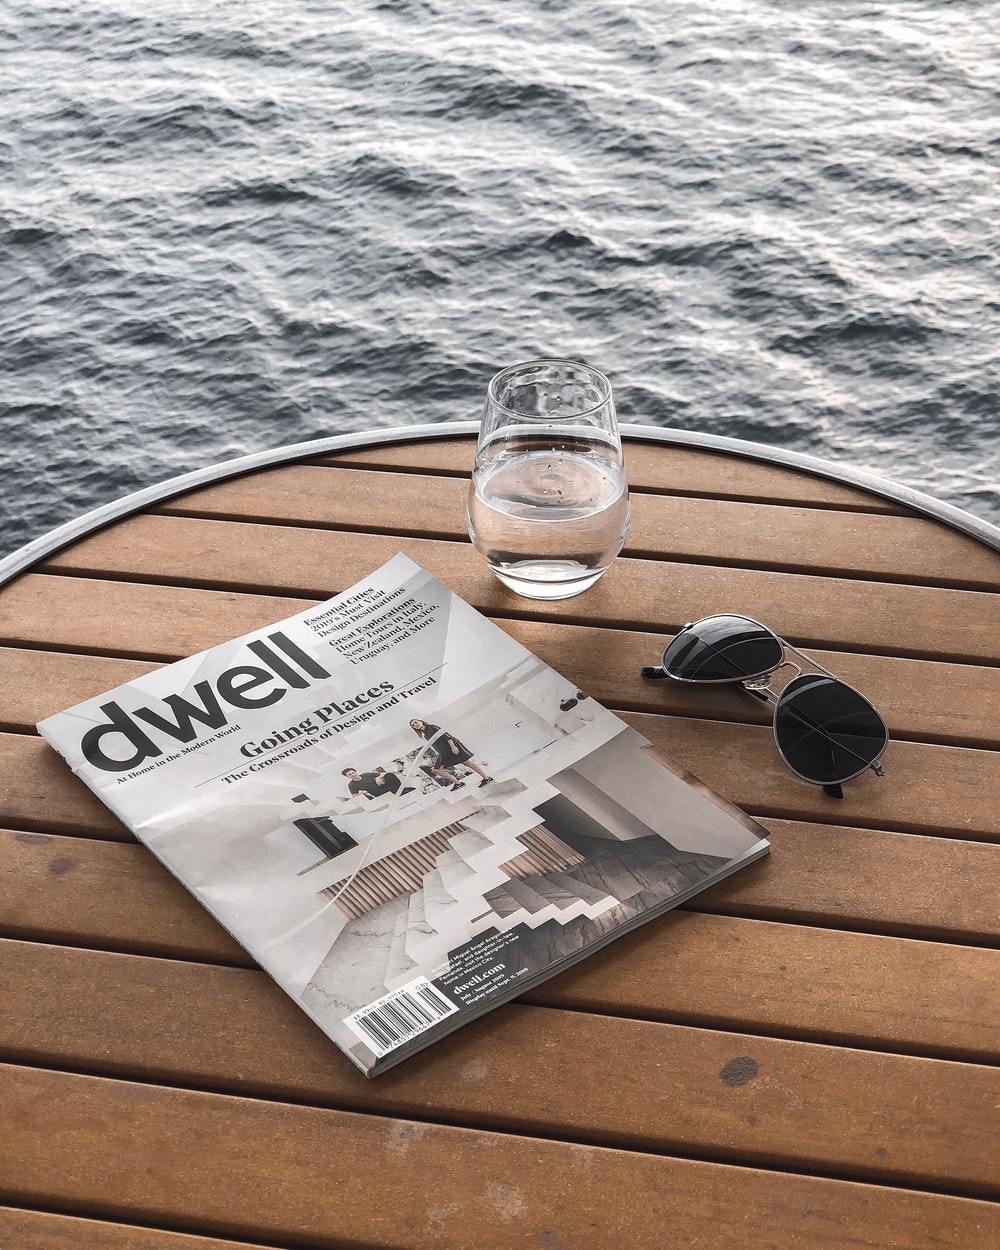 cup of water beside magazine and sunglasses